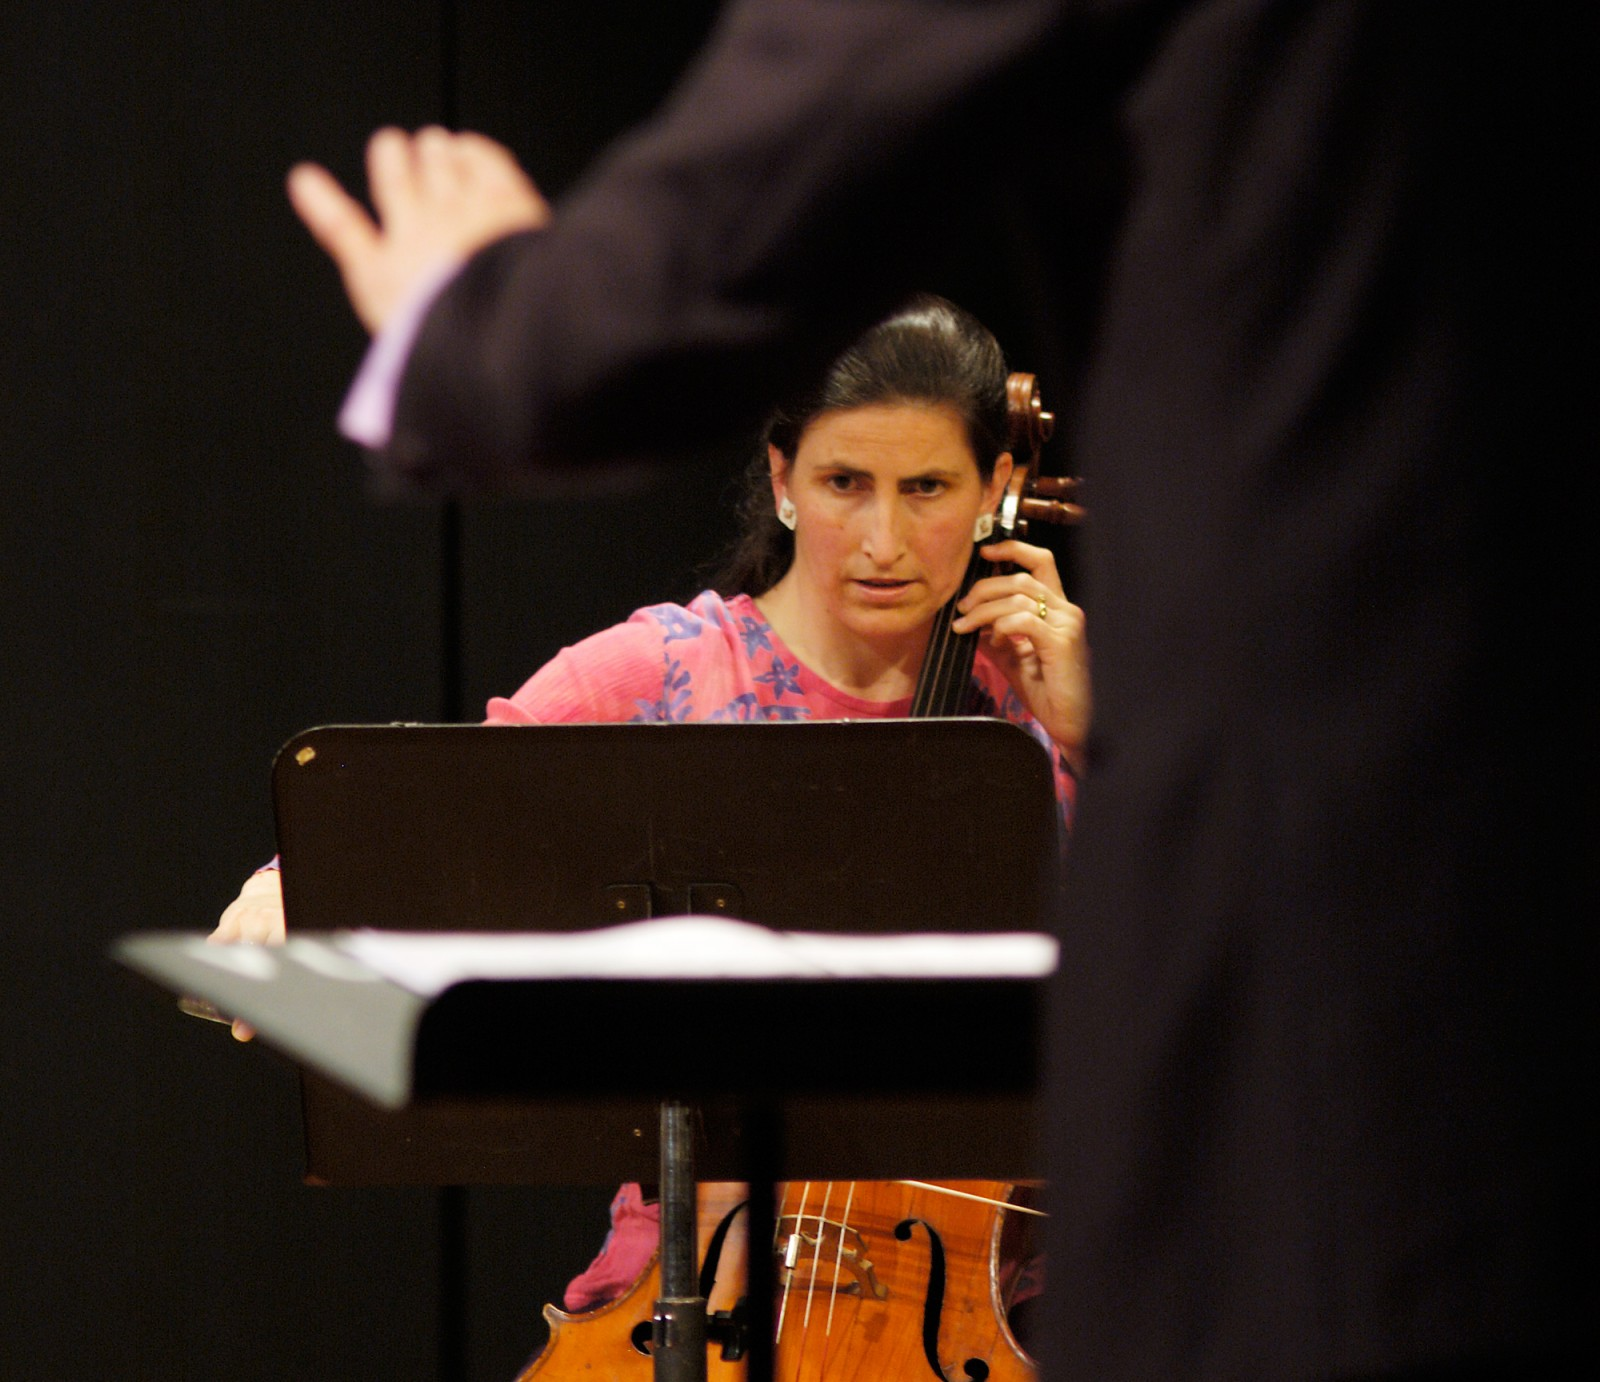 Hamish McKeich, conducting 175 East in one of a pair of performances from their October 2005 programme, has cellist Katherine Hebley under his wing. 175 East, named after Auckland's longitude, is the northern of New Zealand's two professional contemporary music ensembles. The other, Stroma, is based in Wellington.